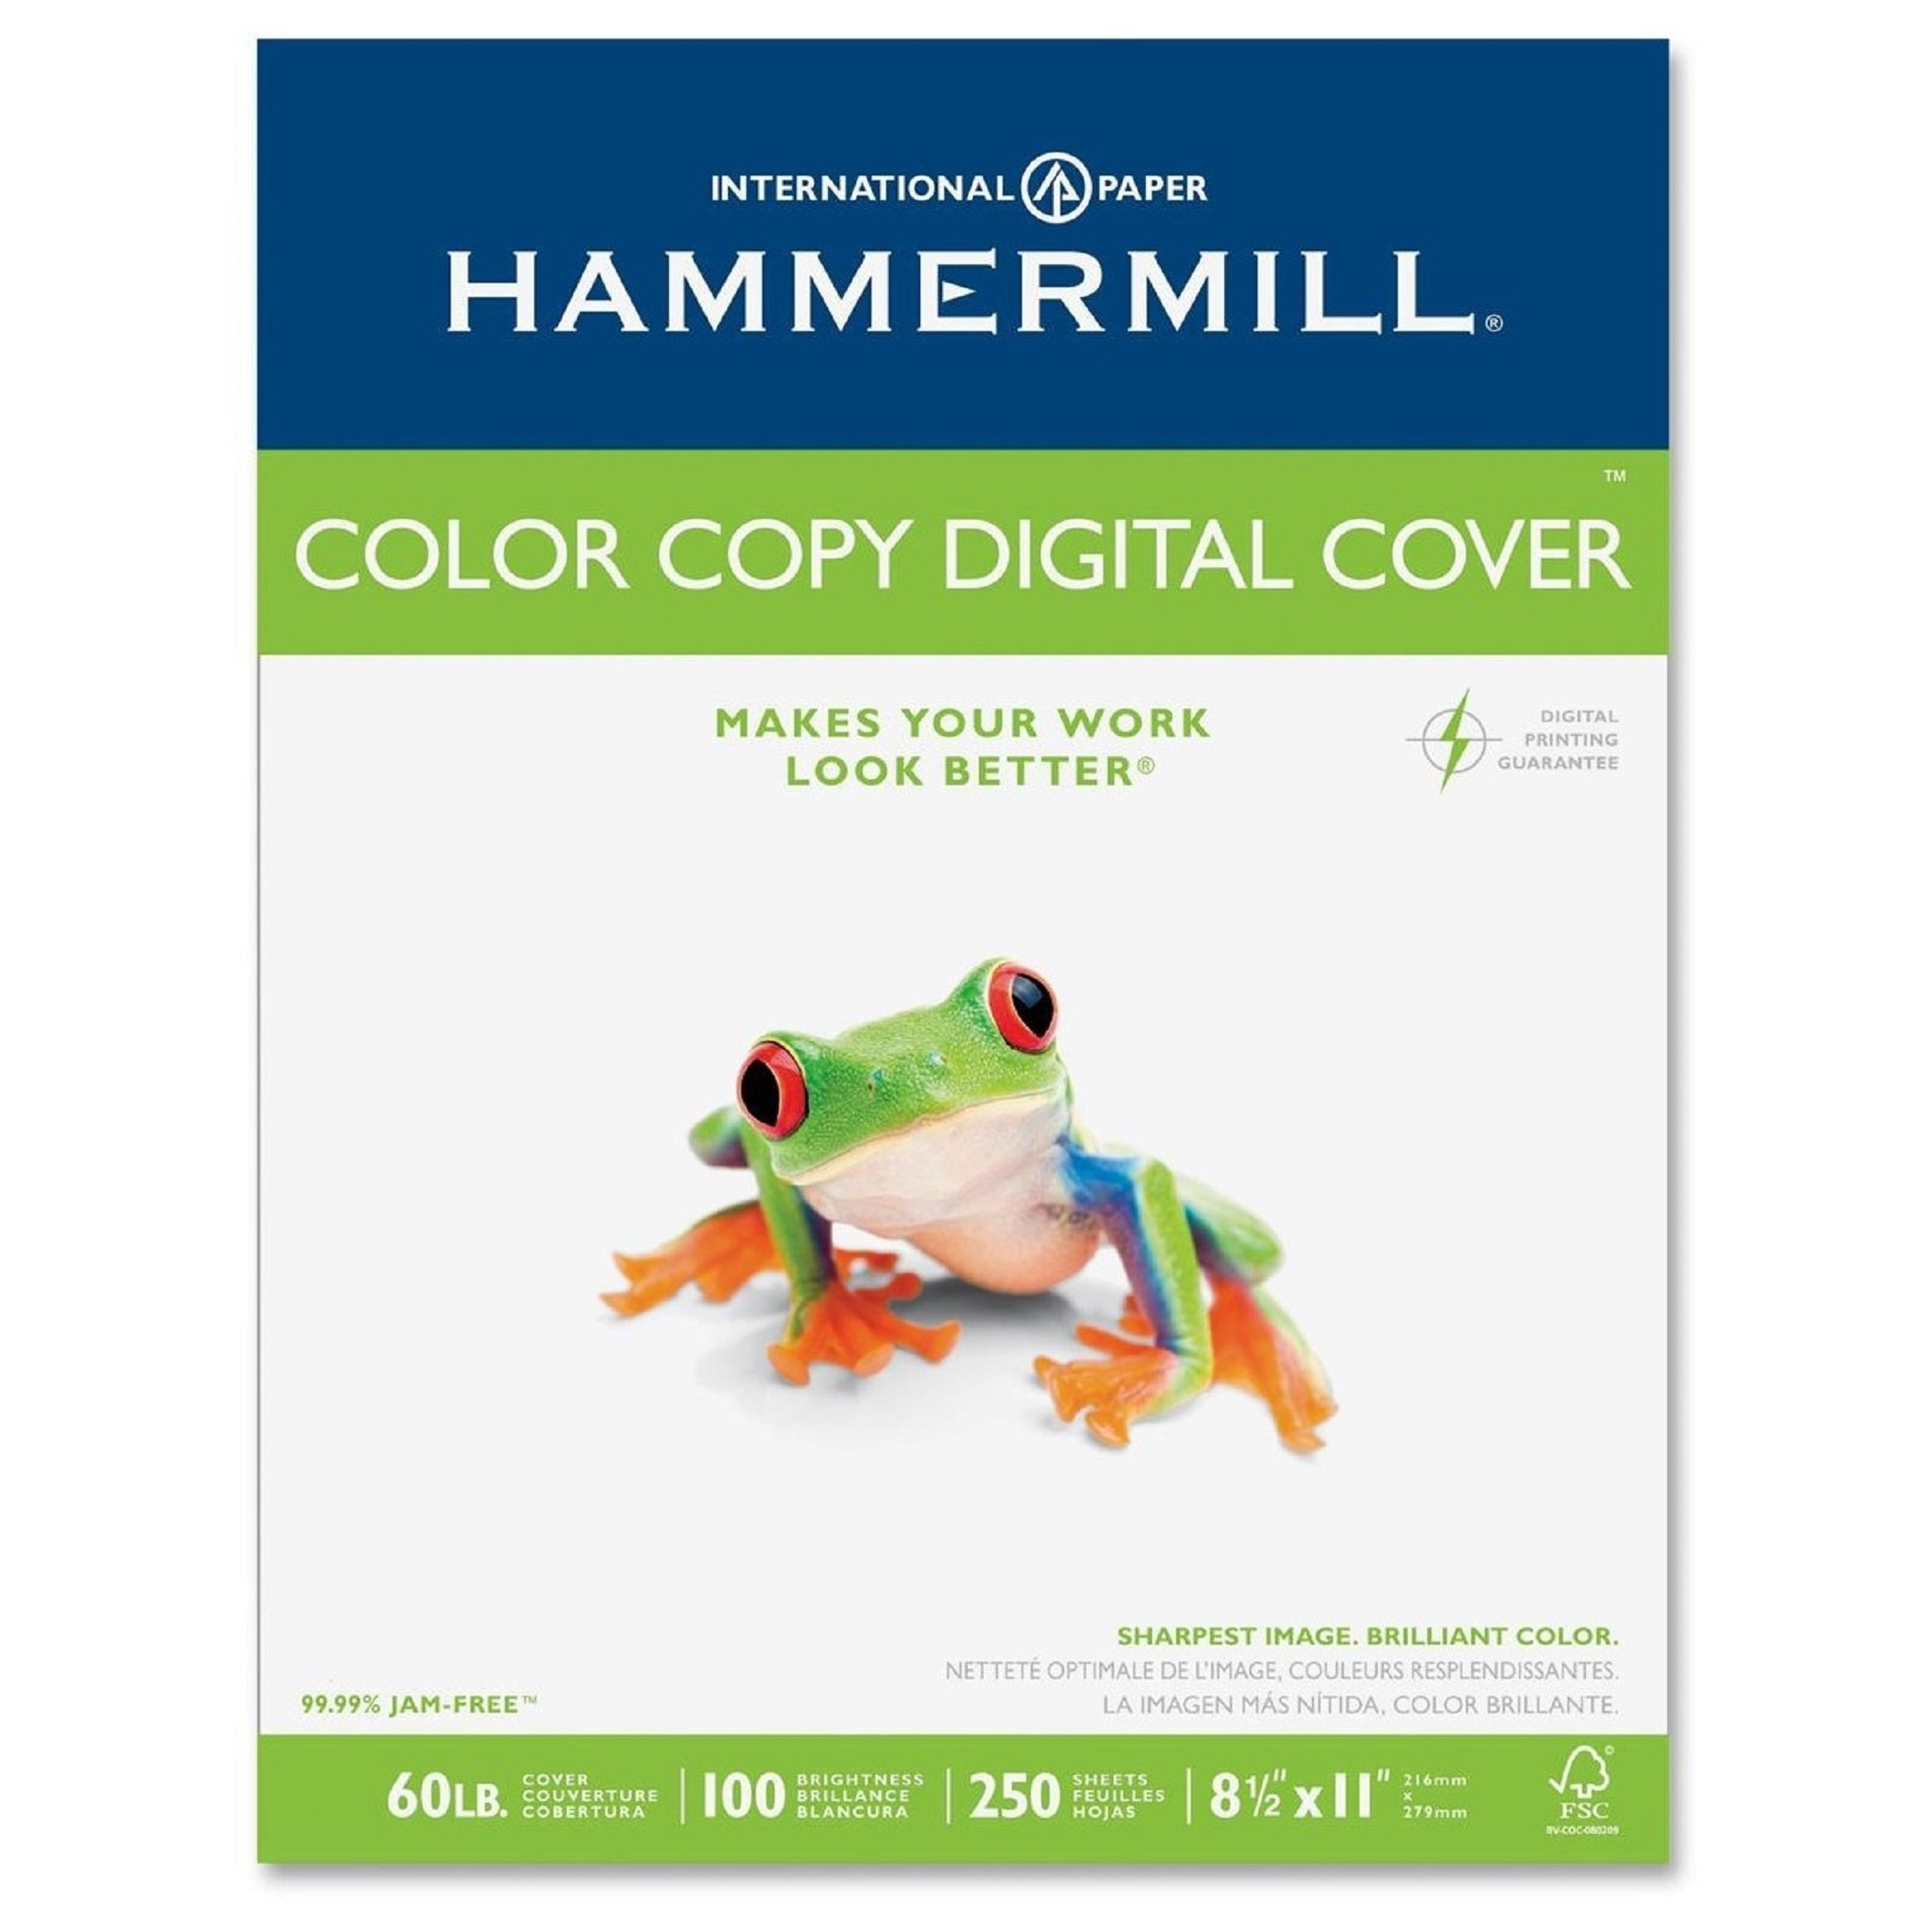 Hammermill Paper, Color Copy Digital Cover, 60 lbs., 8.5 x 11, 100 Bright, 2,500 Sheets / 10 Pack Case (122549C), Made in the USA by Hammermill (Image #2)